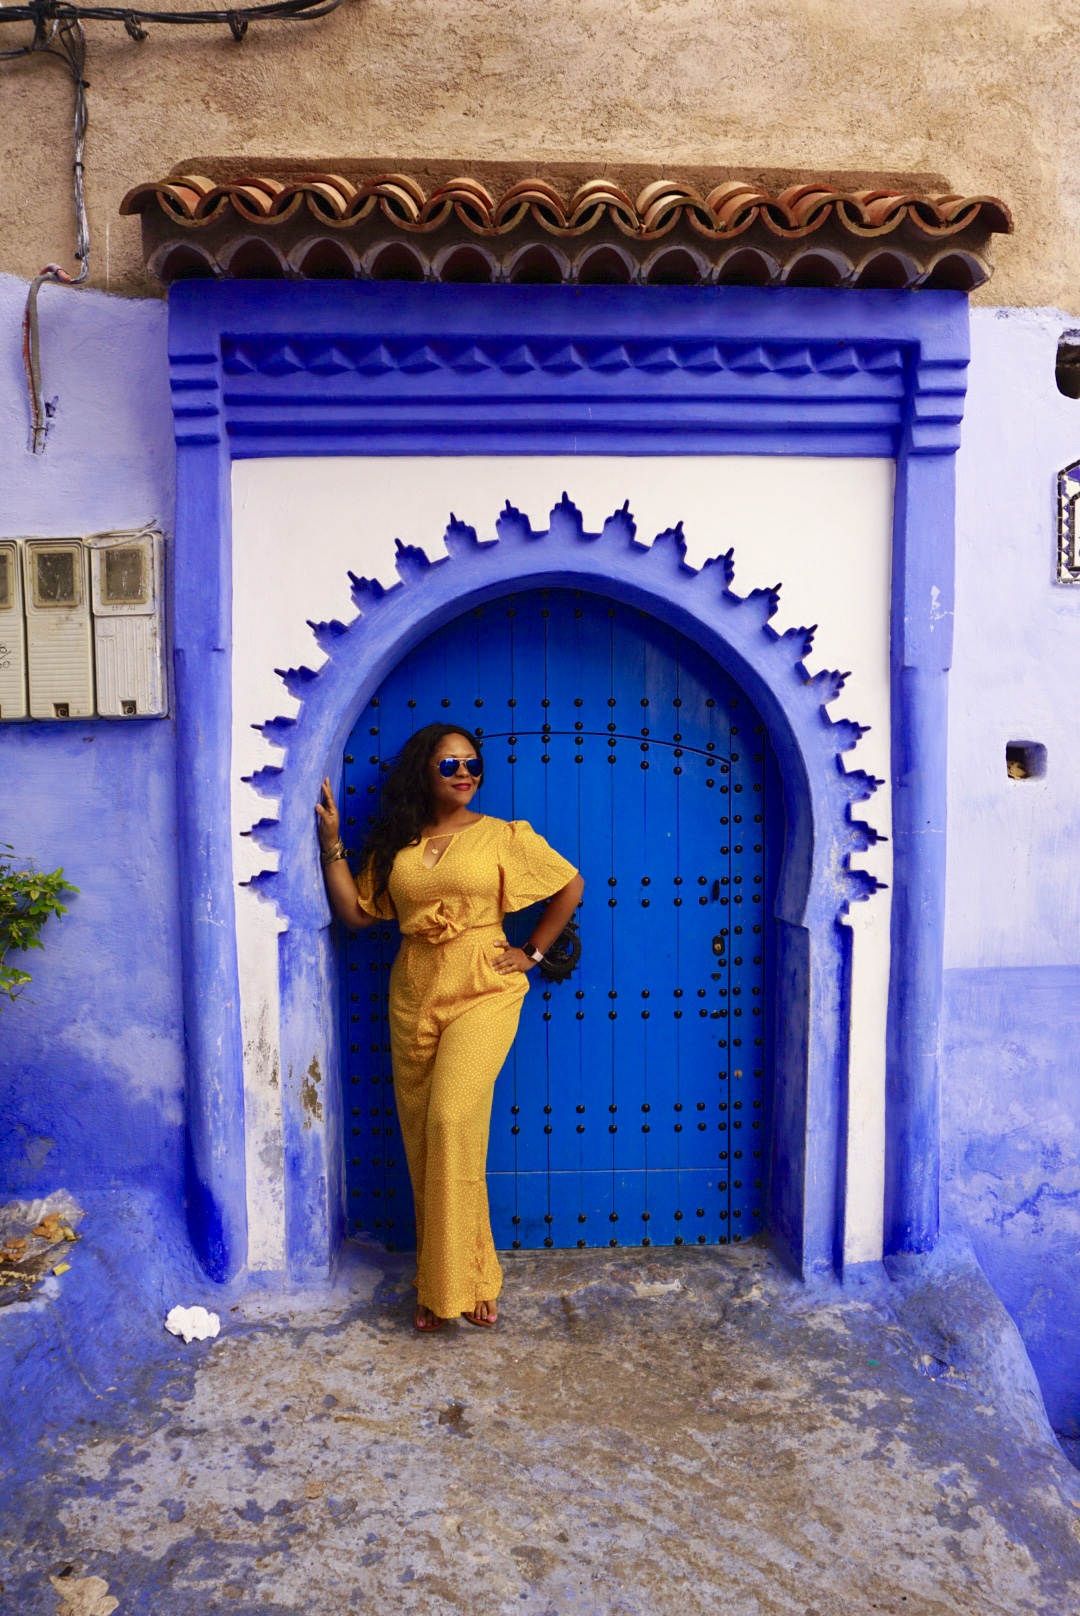 Chefchaouen, Morocco. The do's and dont's while in the Blue City.